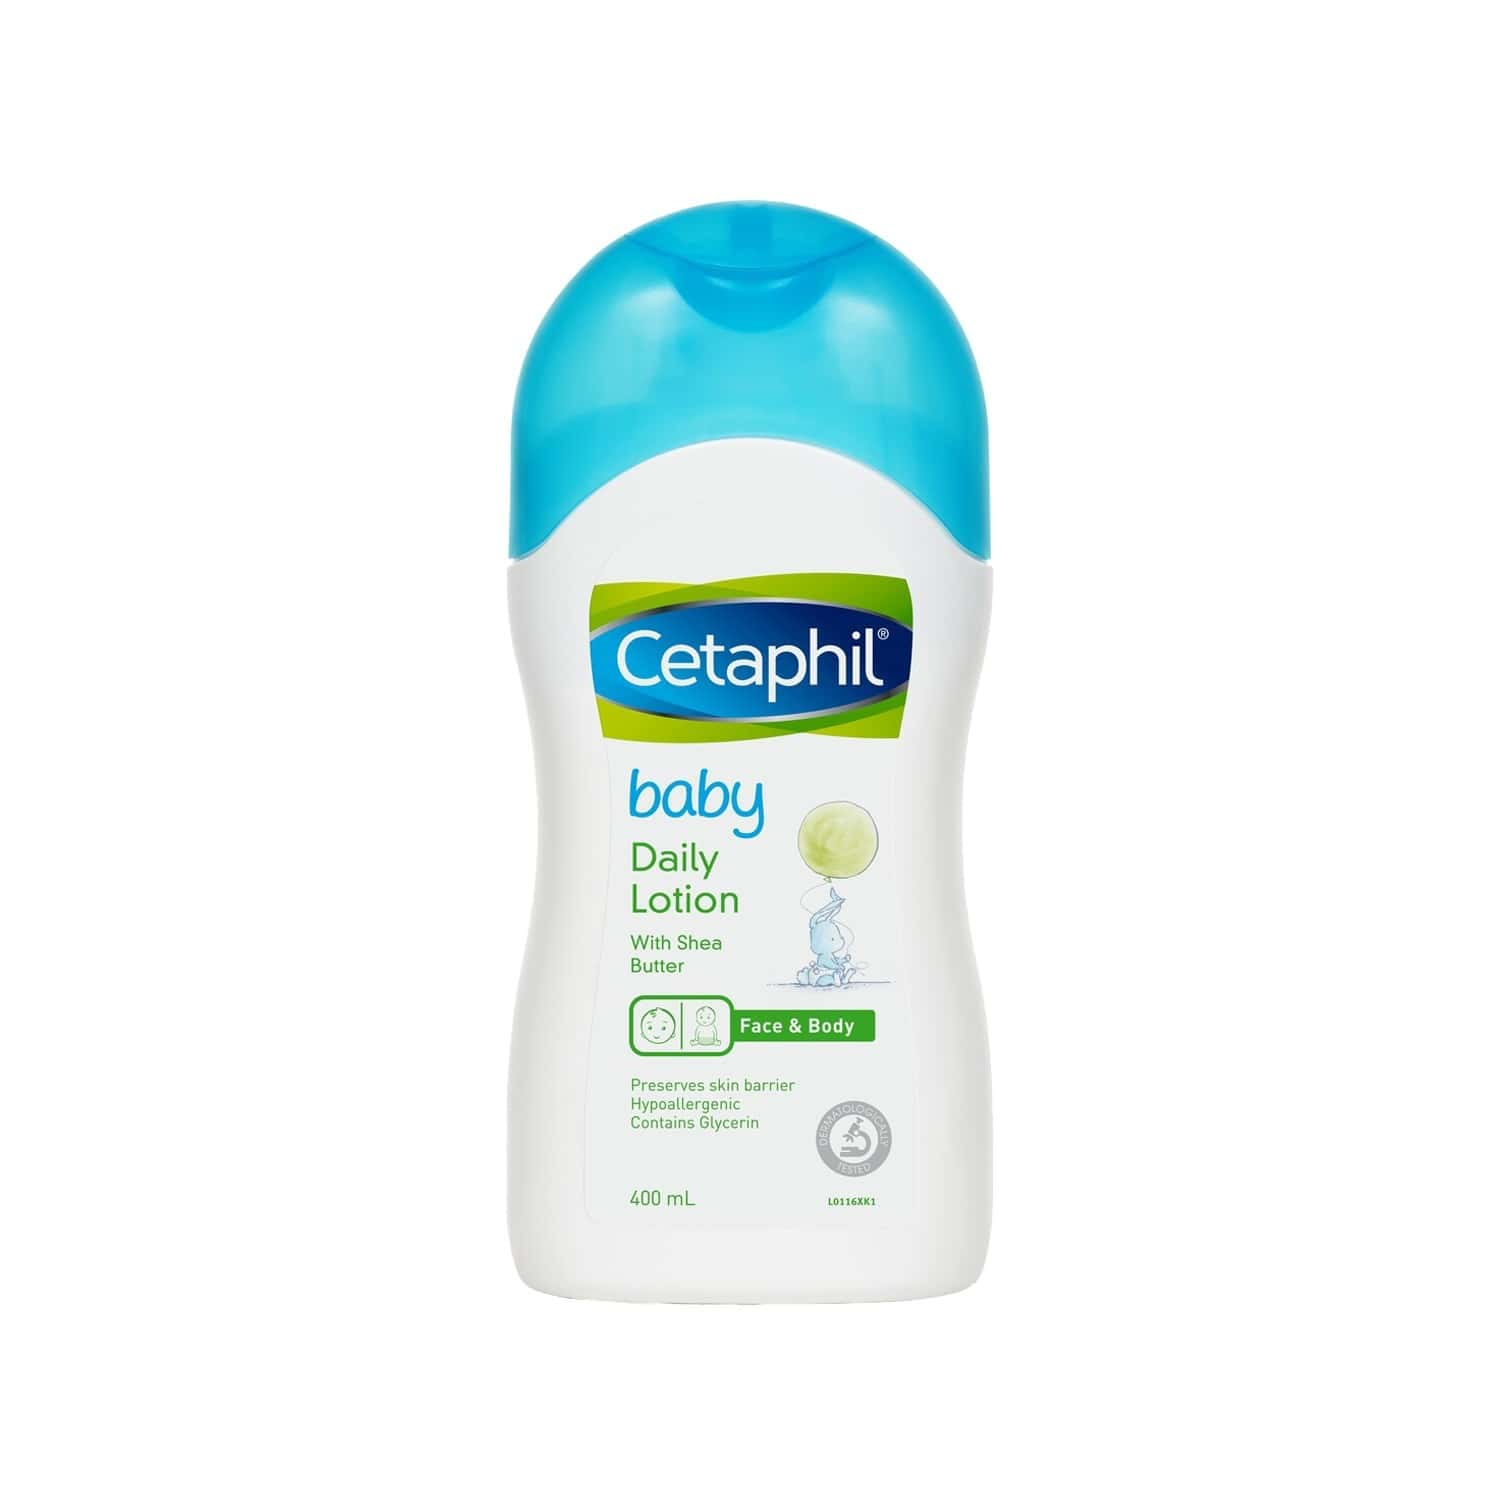 Cetaphil Baby Daily Lotion (with Shea Butter) - 400ml